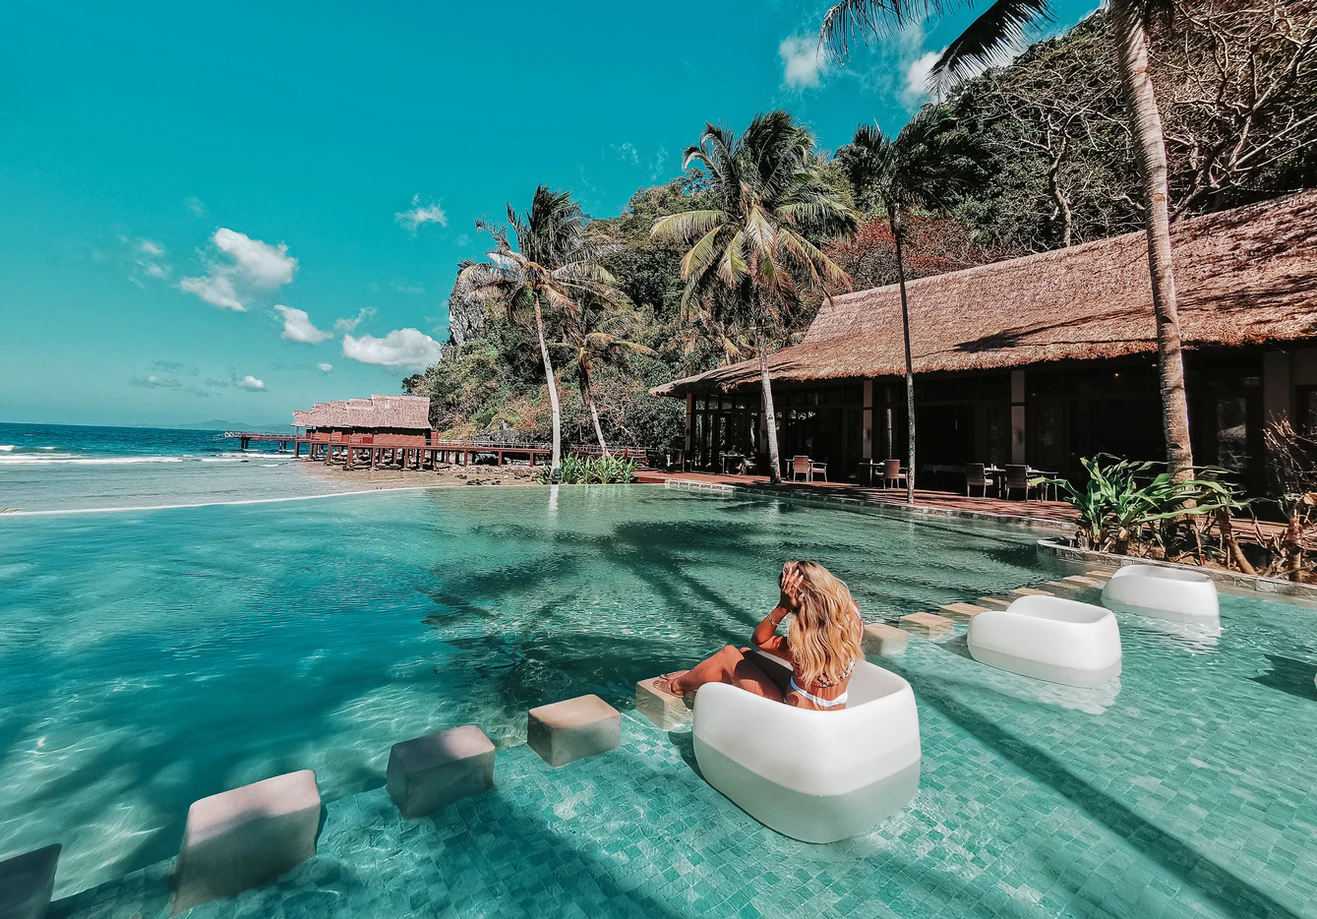 New Normal 4 Things to know when you plan for a getaway in the Philippines exotic philippines travel blog g dumaguing travel blogger cebu vlogger